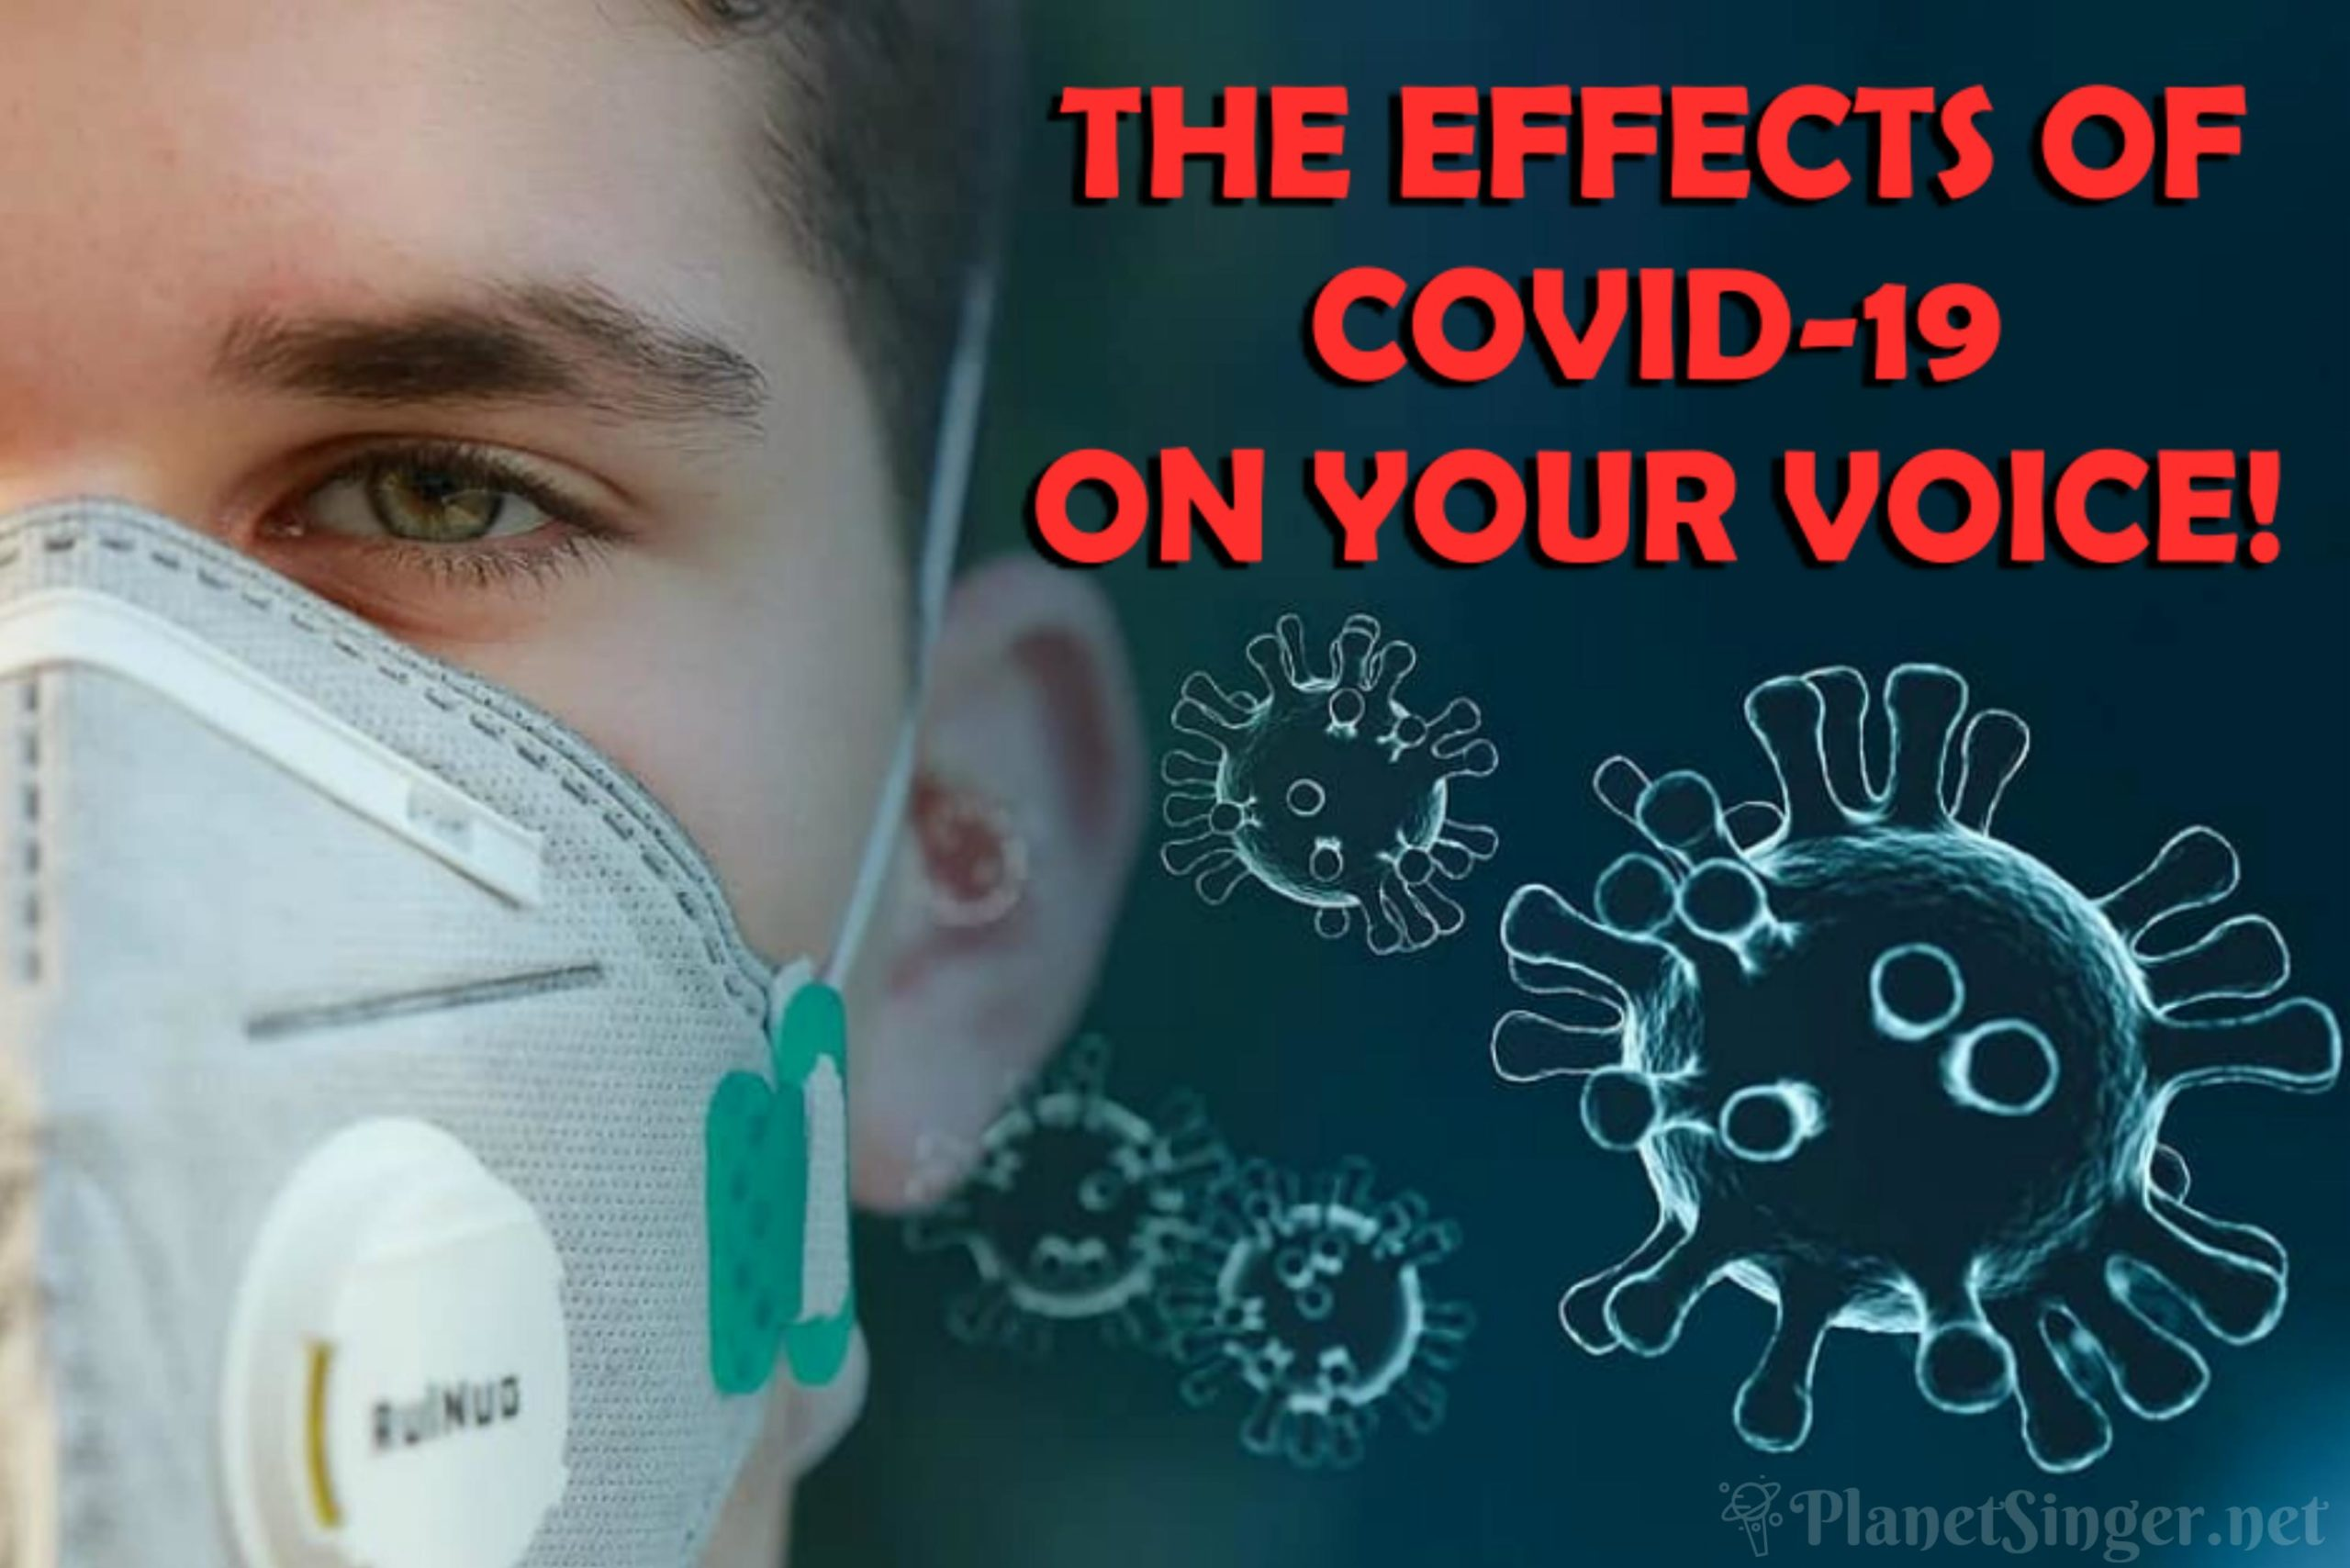 The Effects of Covid-19 on Your Voice!